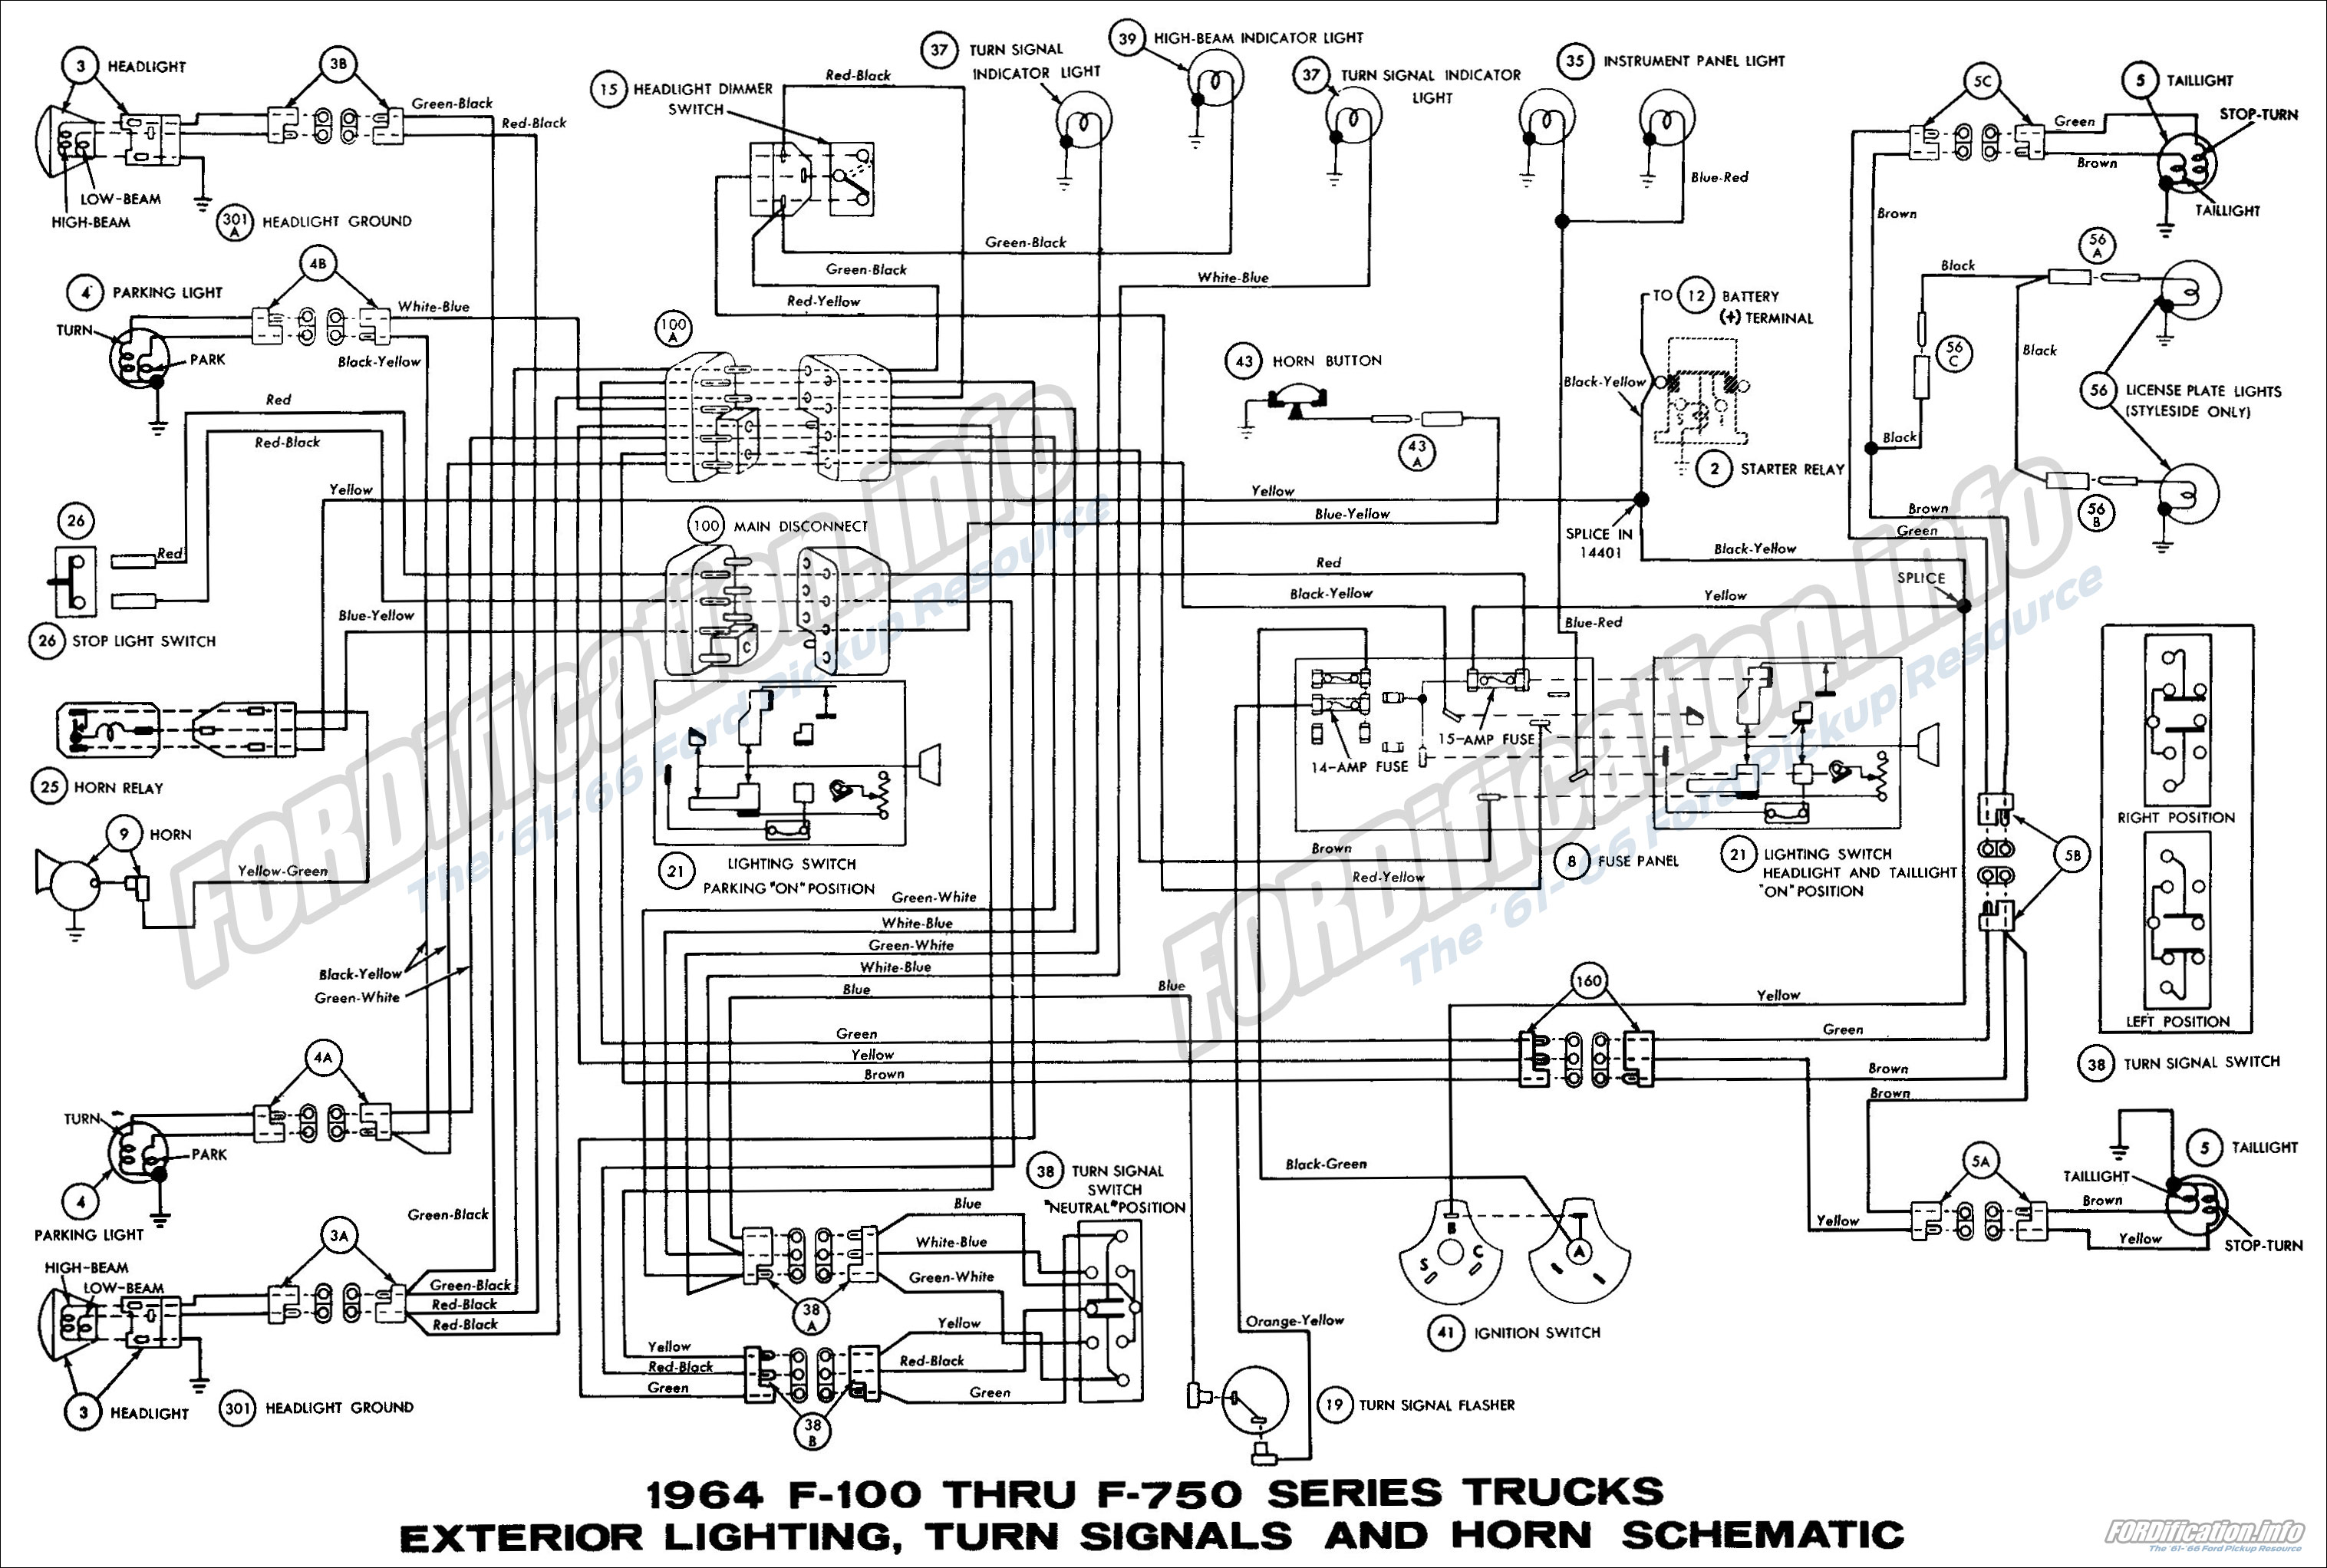 1964 ford truck wiring diagrams fordification info the 61 66 rh  fordification info 1976 ford f100 wiring diagram 1969 ford f100 wiring  diagram